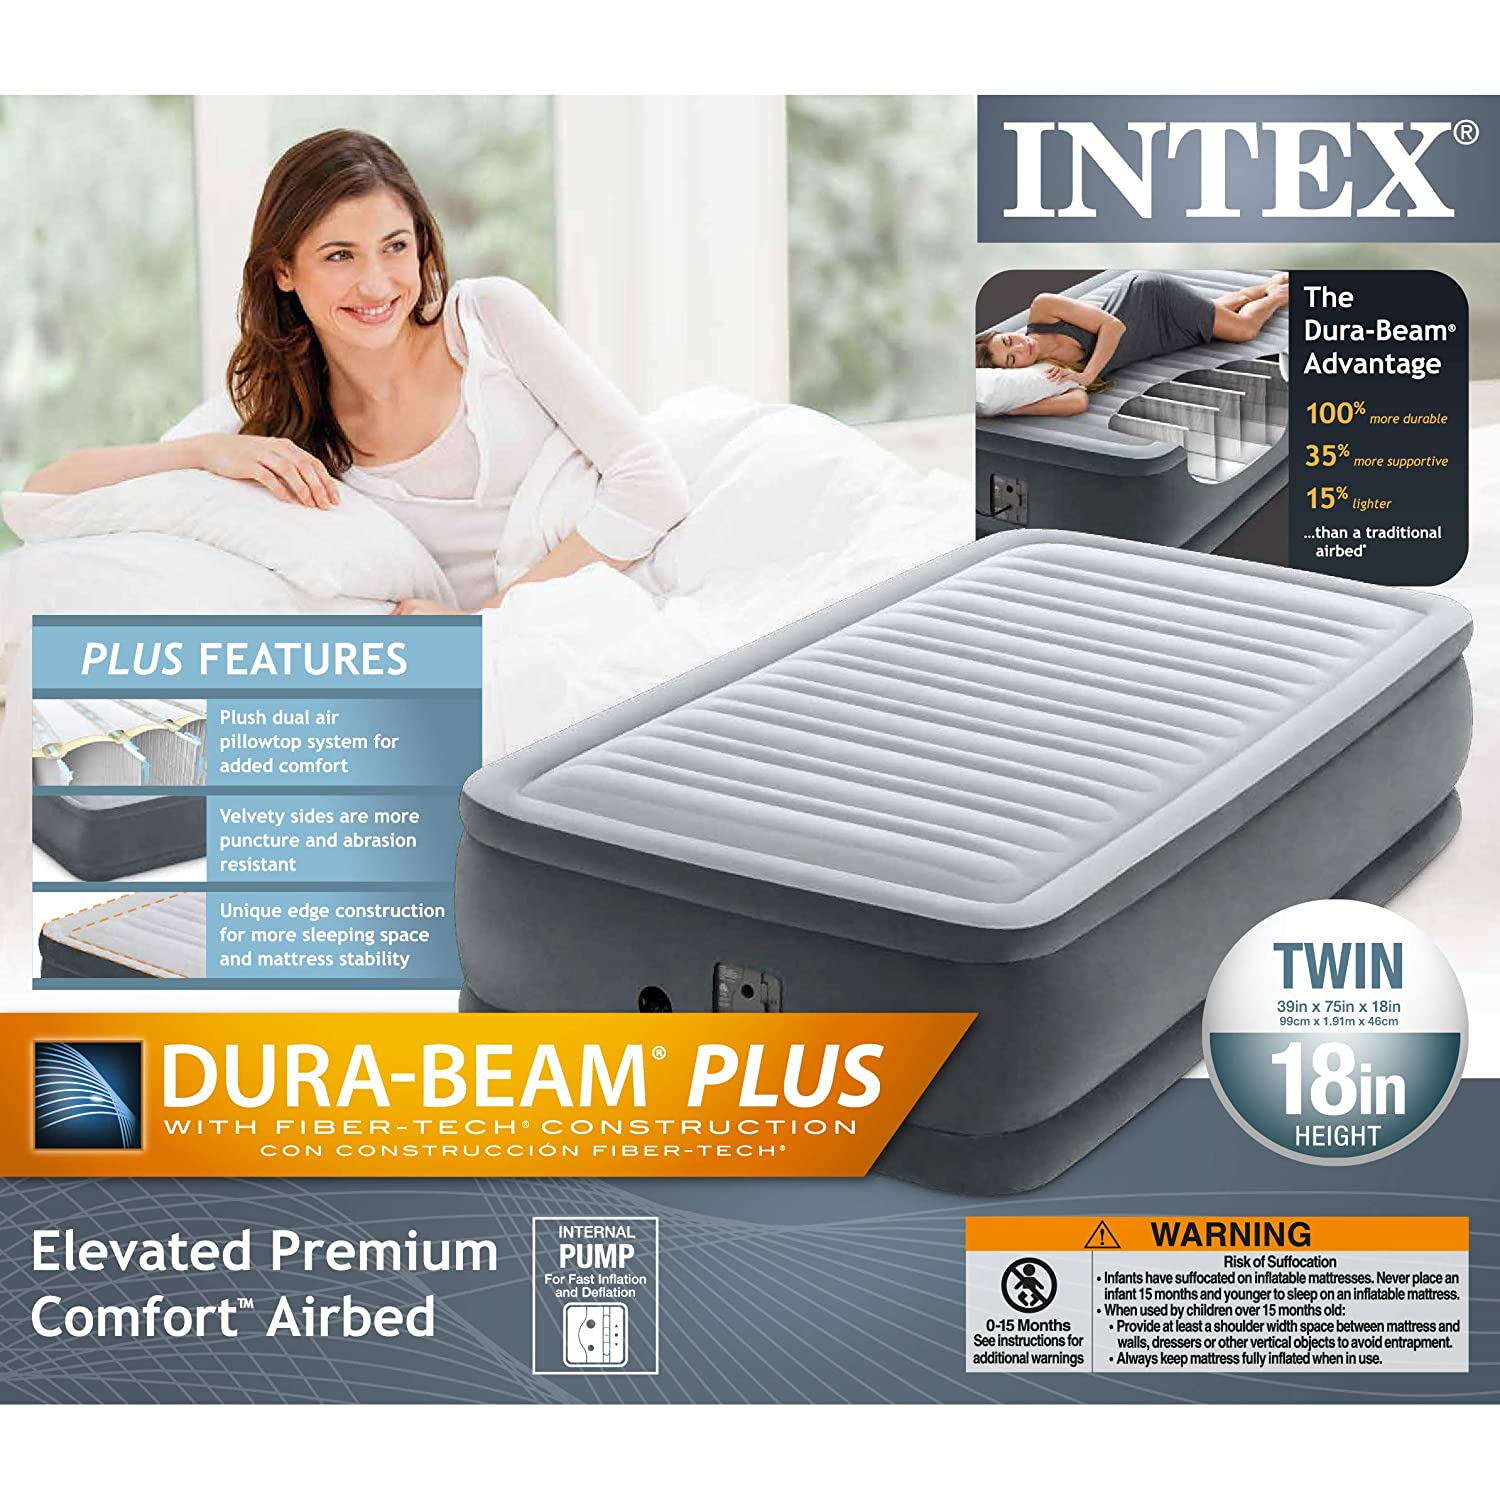 Intex Comfort Plush Elevated Dura-Beam Airbed with Internal Electric Pump Bed Height 18